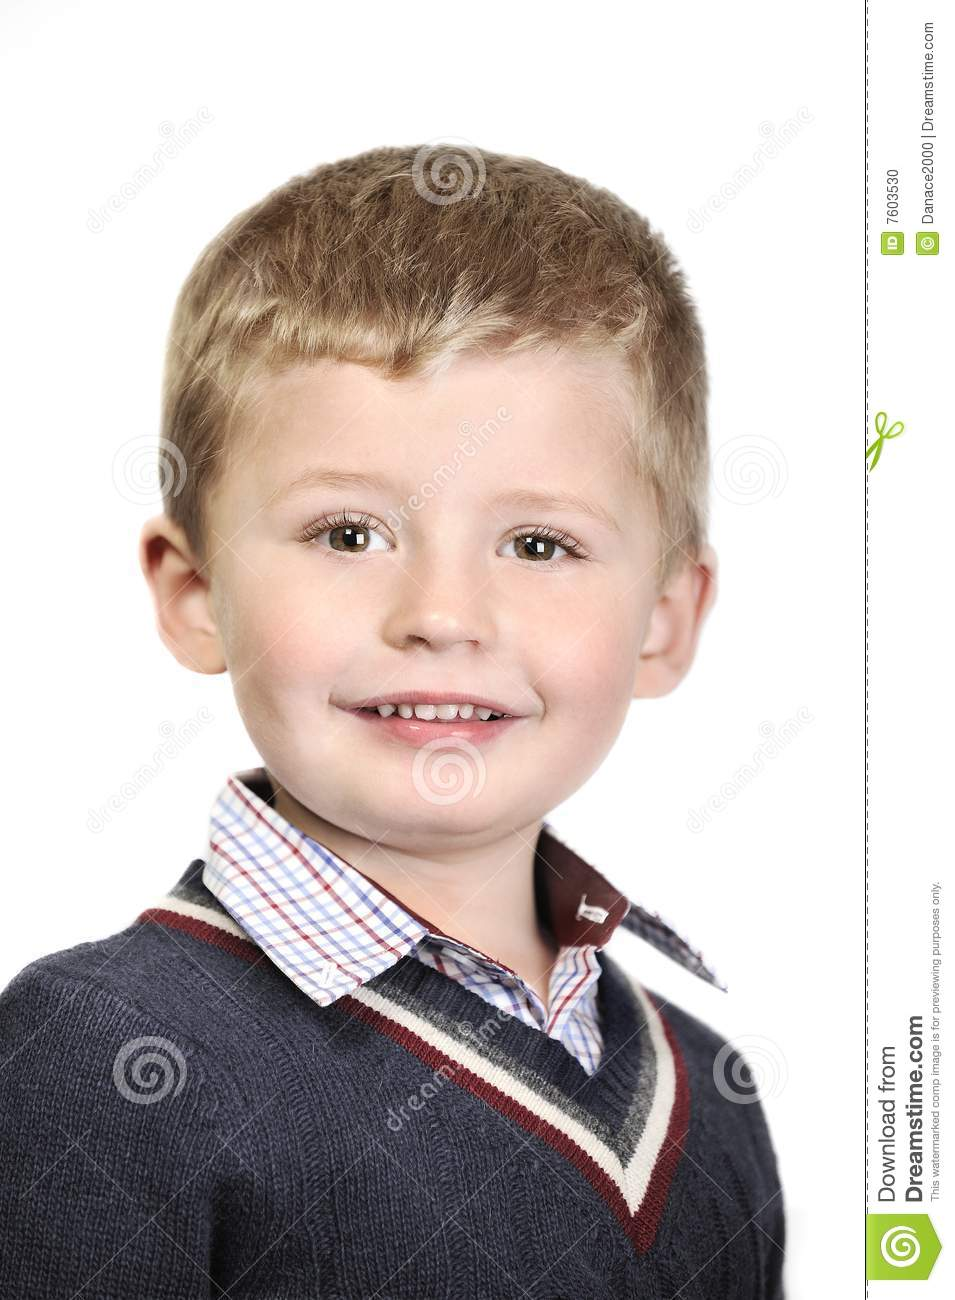 Four Year Two Year Community: 4 Year Old Boy Portrait. Stock Photo. Image Of Eyes